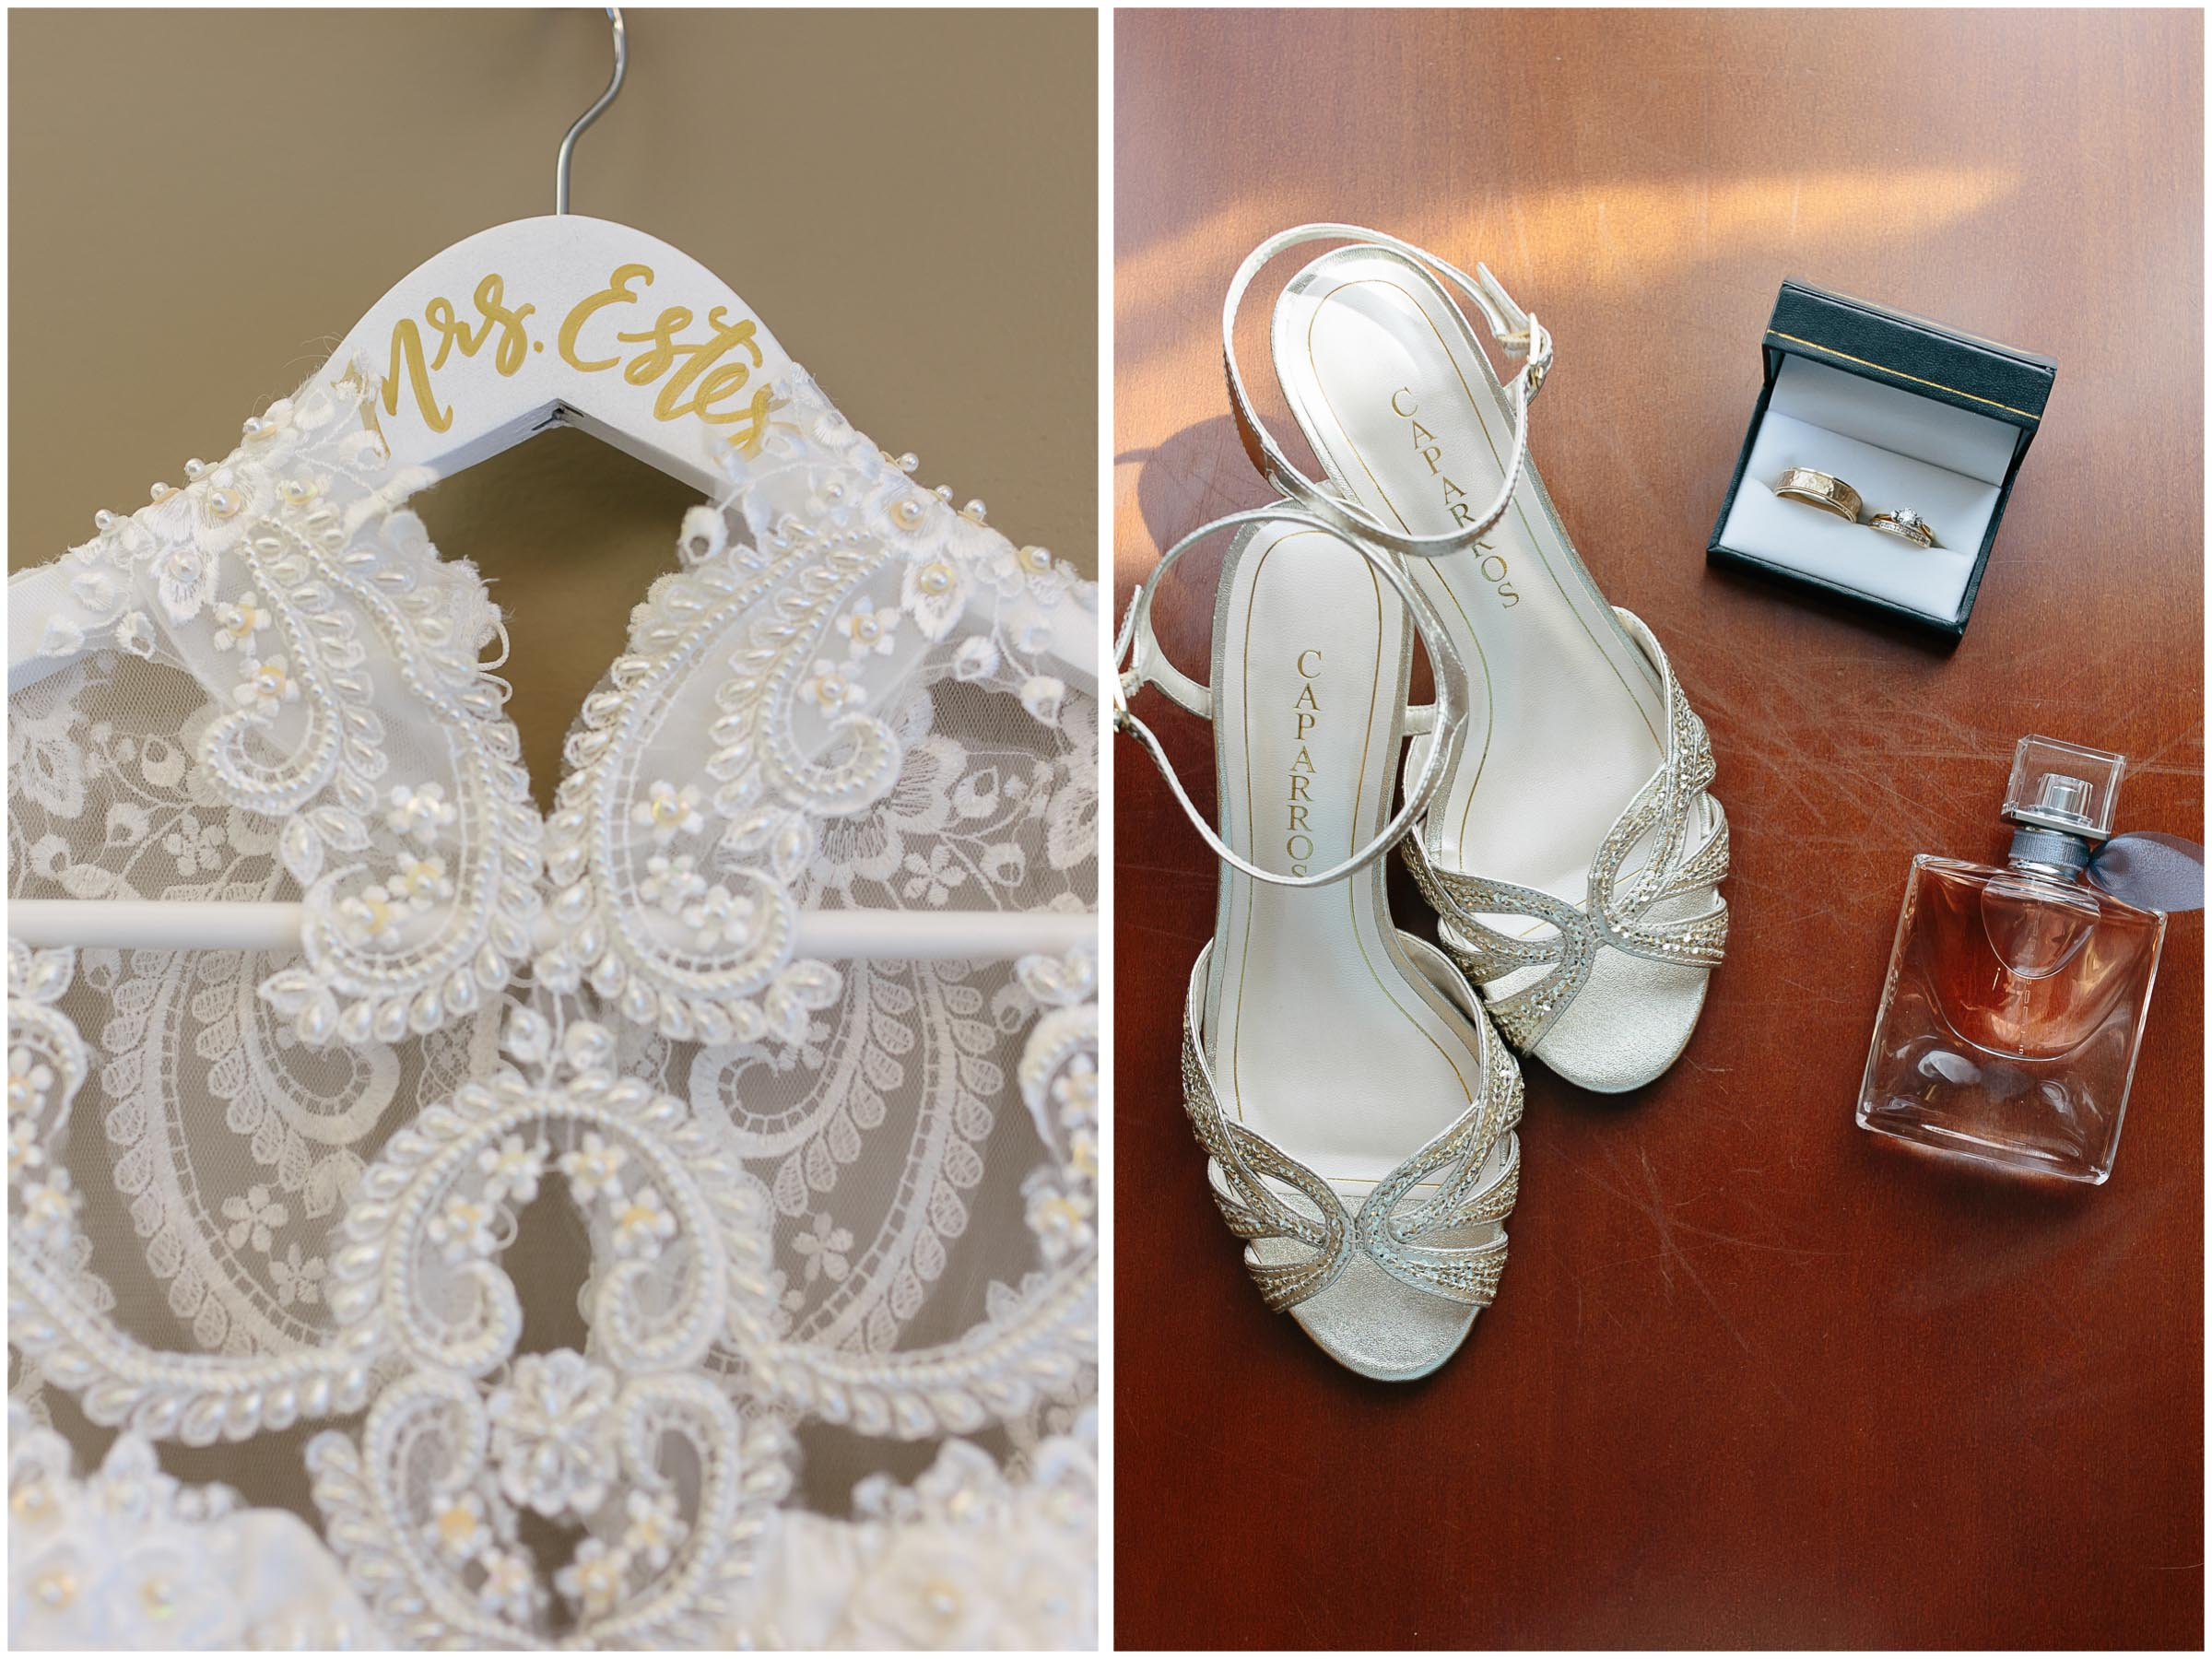 Chic New Hampshire Wedding at Manchester Country Club Bedford - dress, gown, shoes, rings, and La Vie est Belle perfume